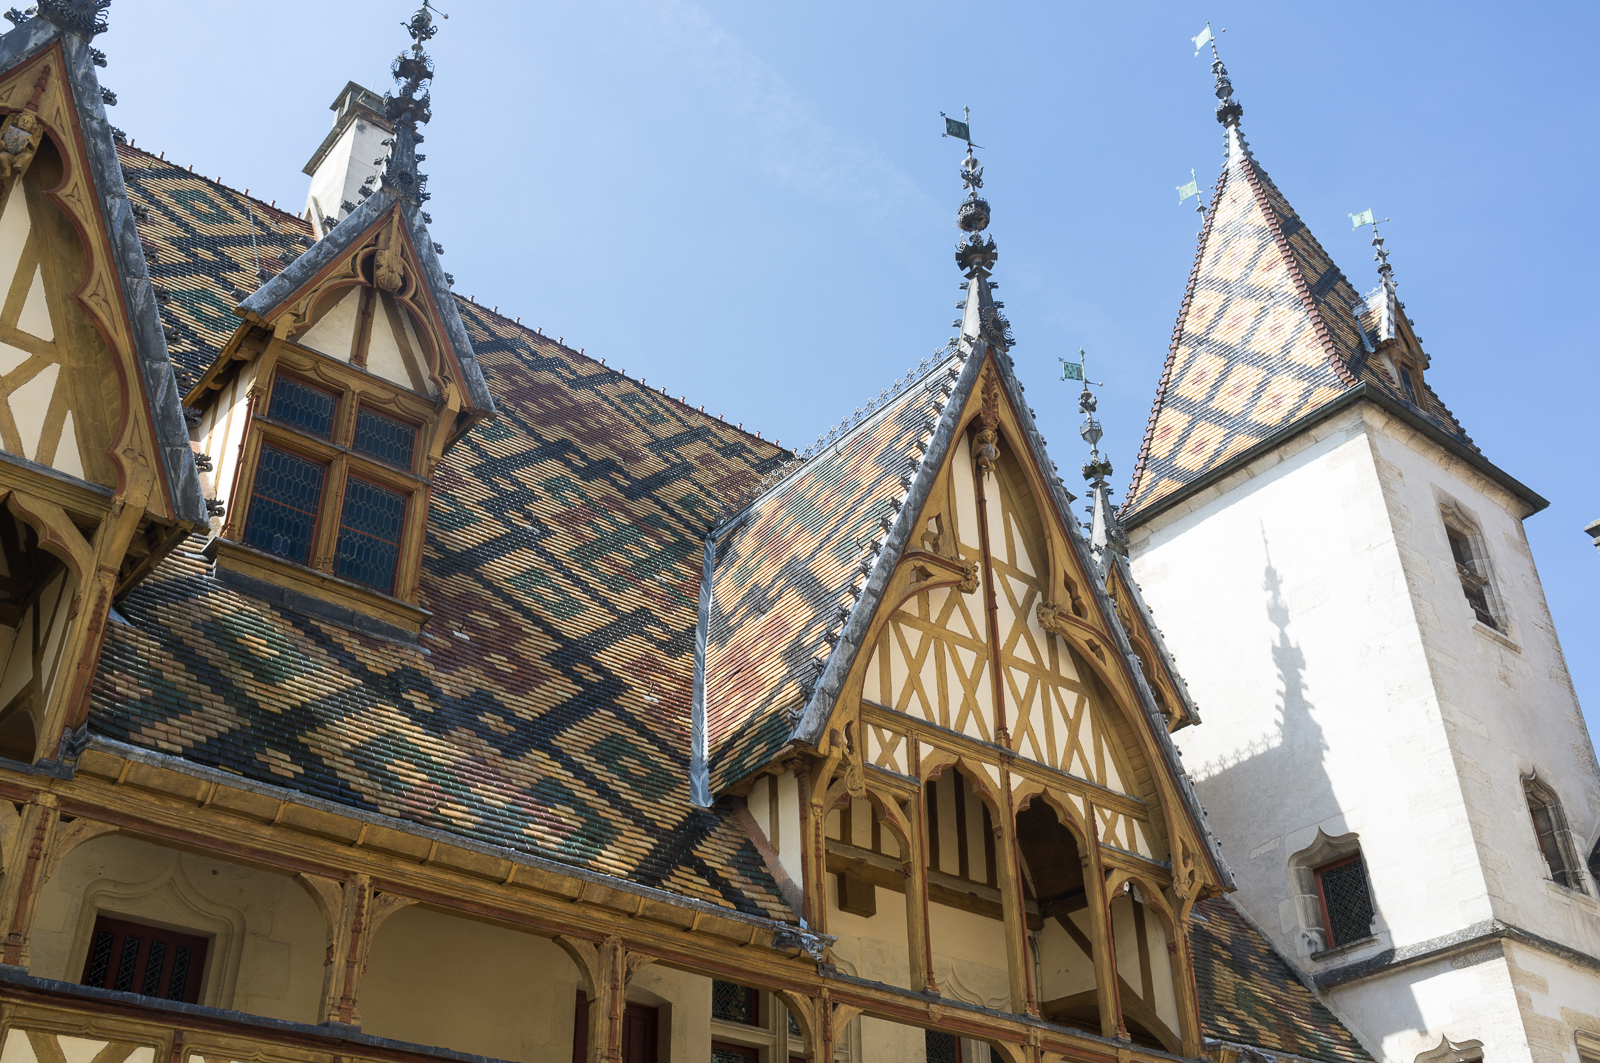 Hospice de Beaune - roof patterns and design